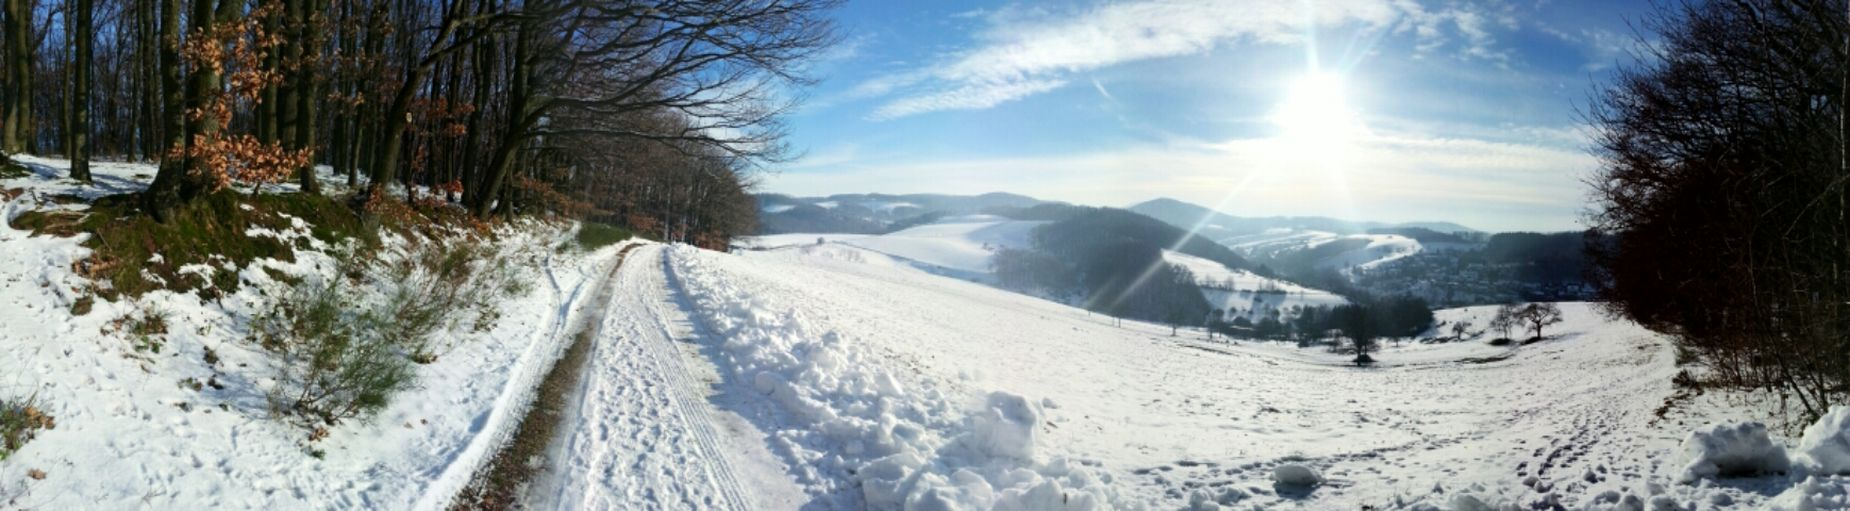 Just two weeks ago there was a Winter Wonderland Landscape Panorama